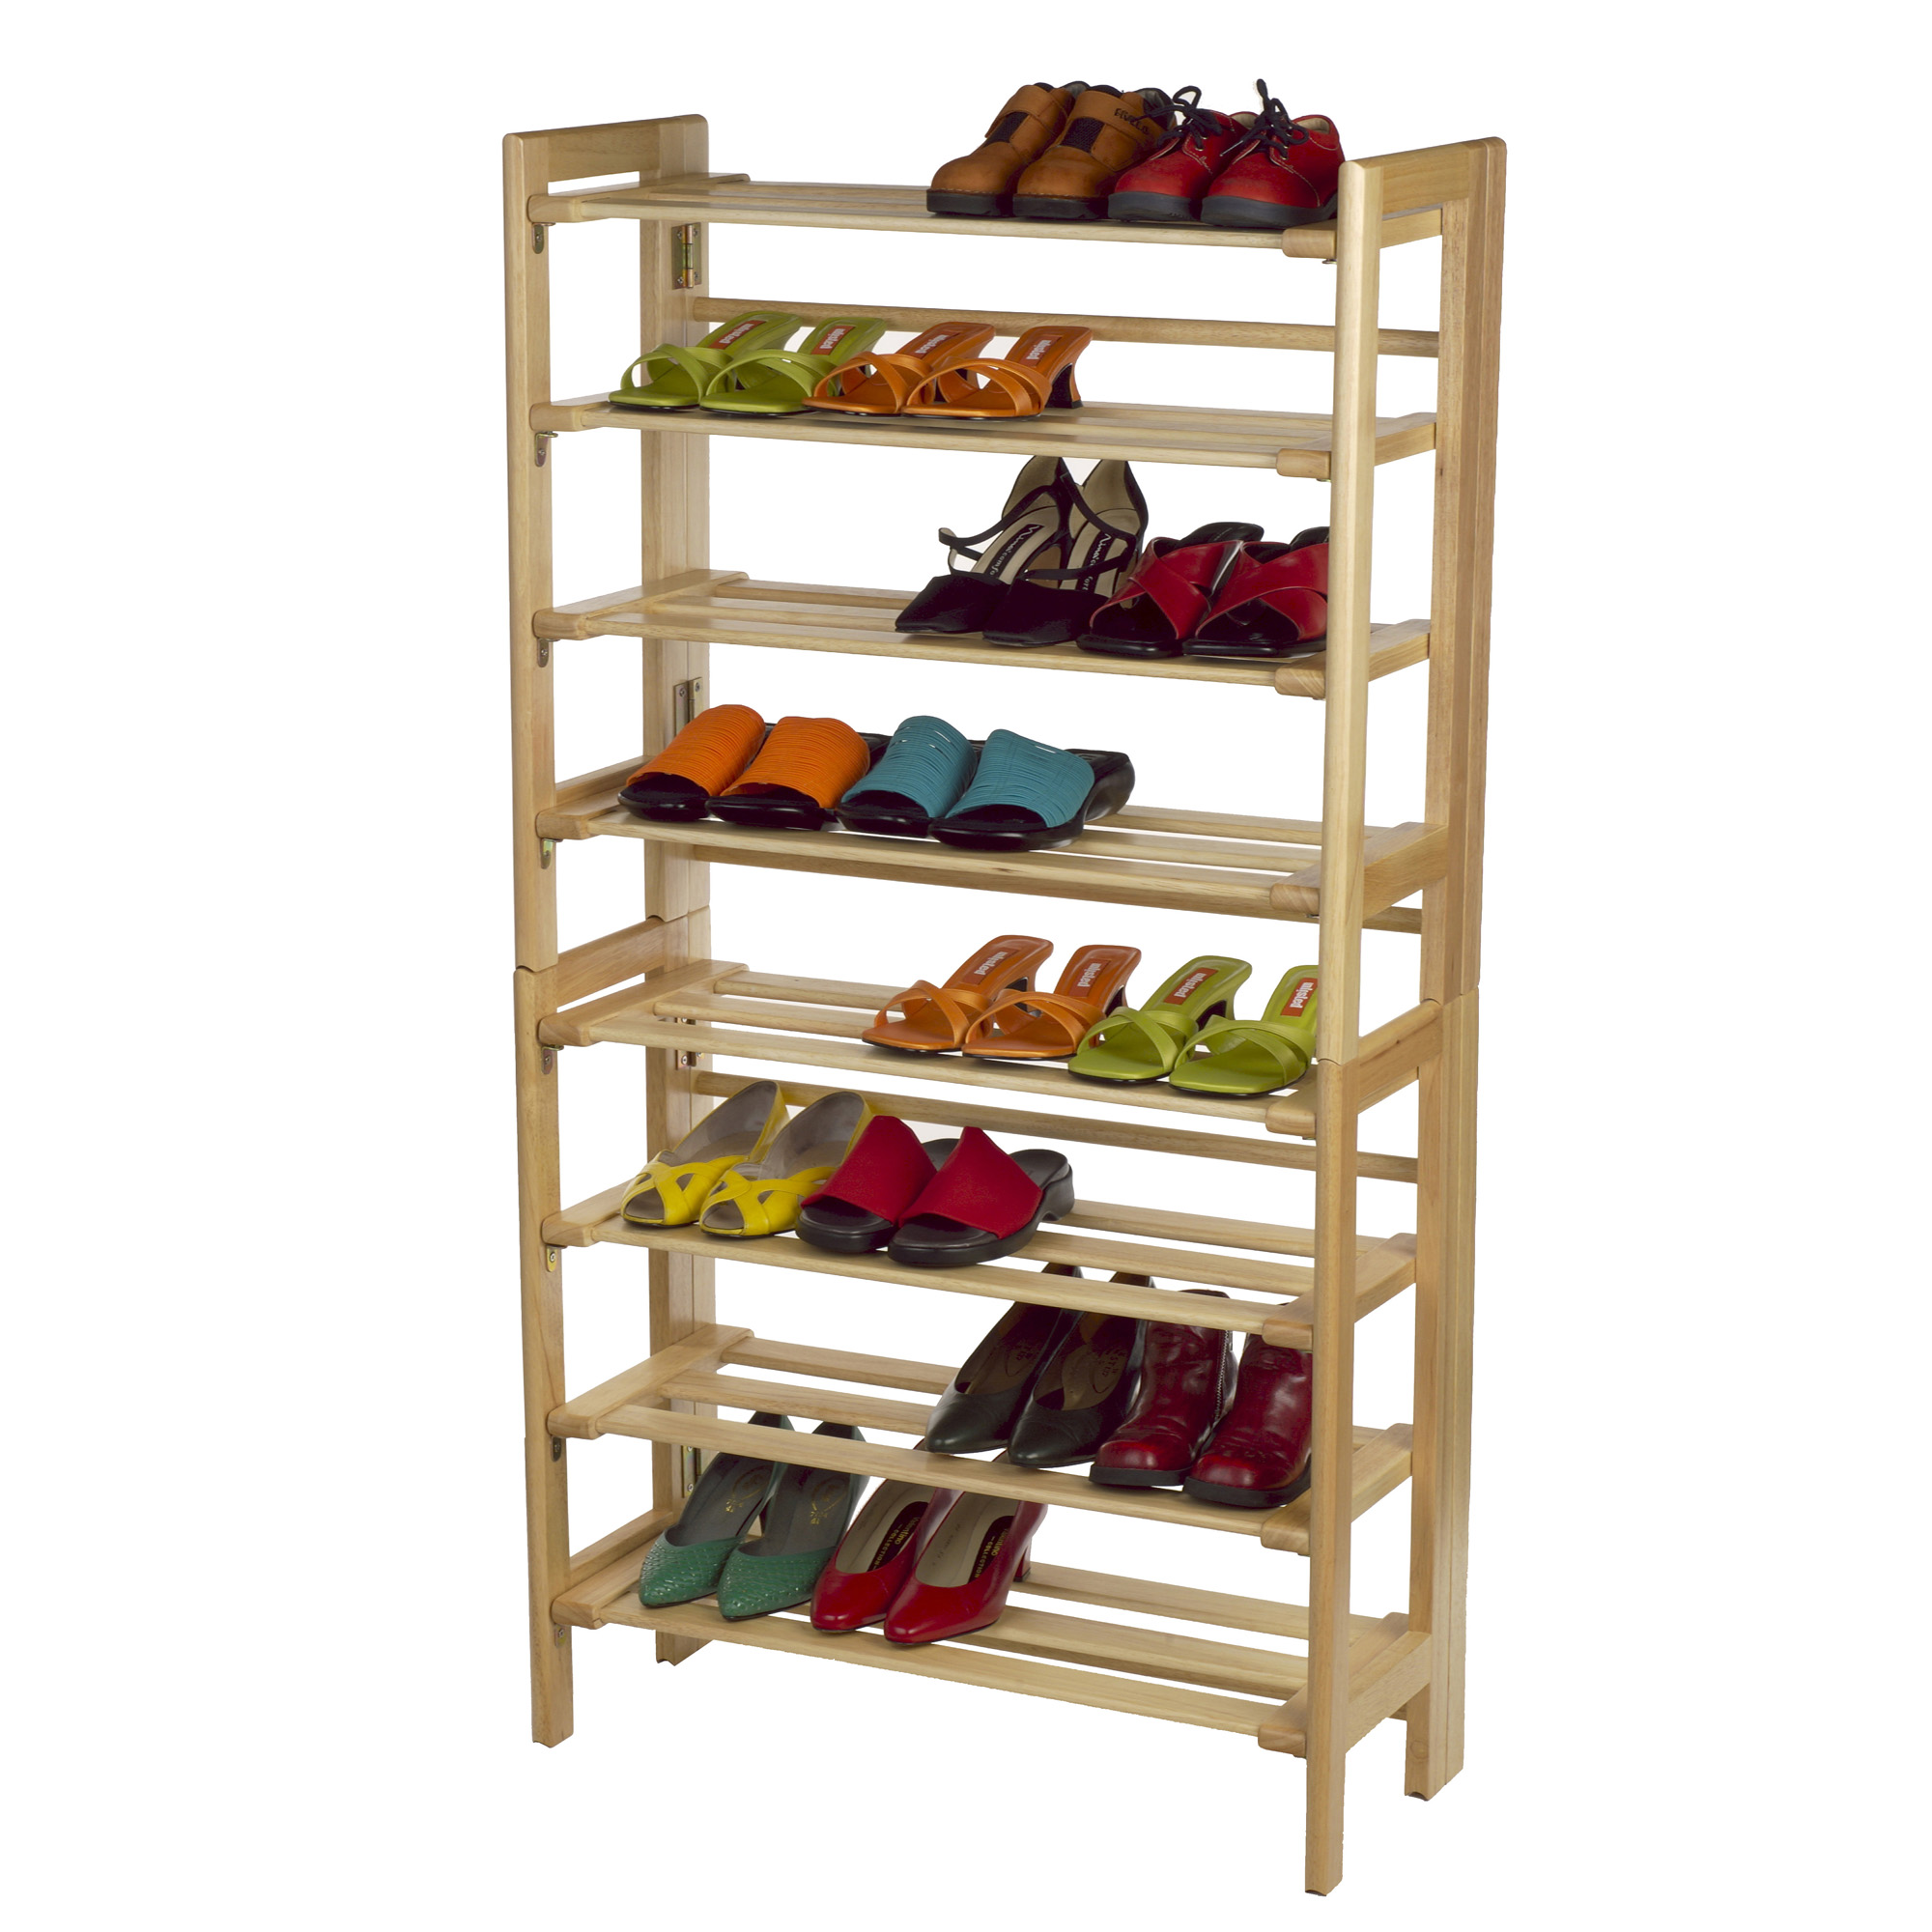 Winsome Wood Clifford Foldable 4 Tier Shoe Rack, Natural Finish    Walmart.com